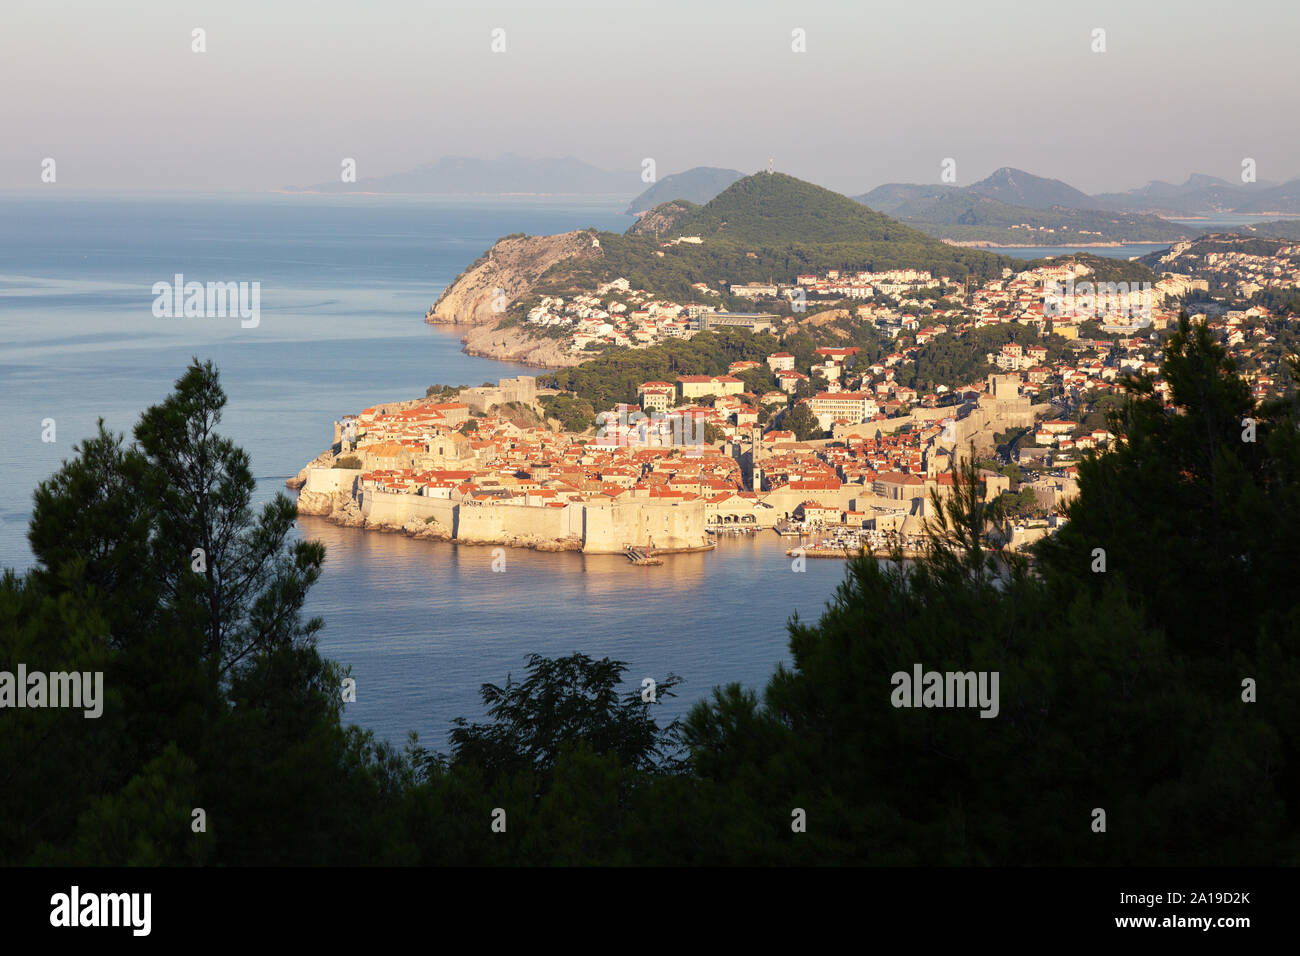 Dubrovnik old town UNESCO world heritage site  landscape - the city walls seen from the south along the Dalmatian Coast, Dubrovnik Croatia Europe Stock Photo